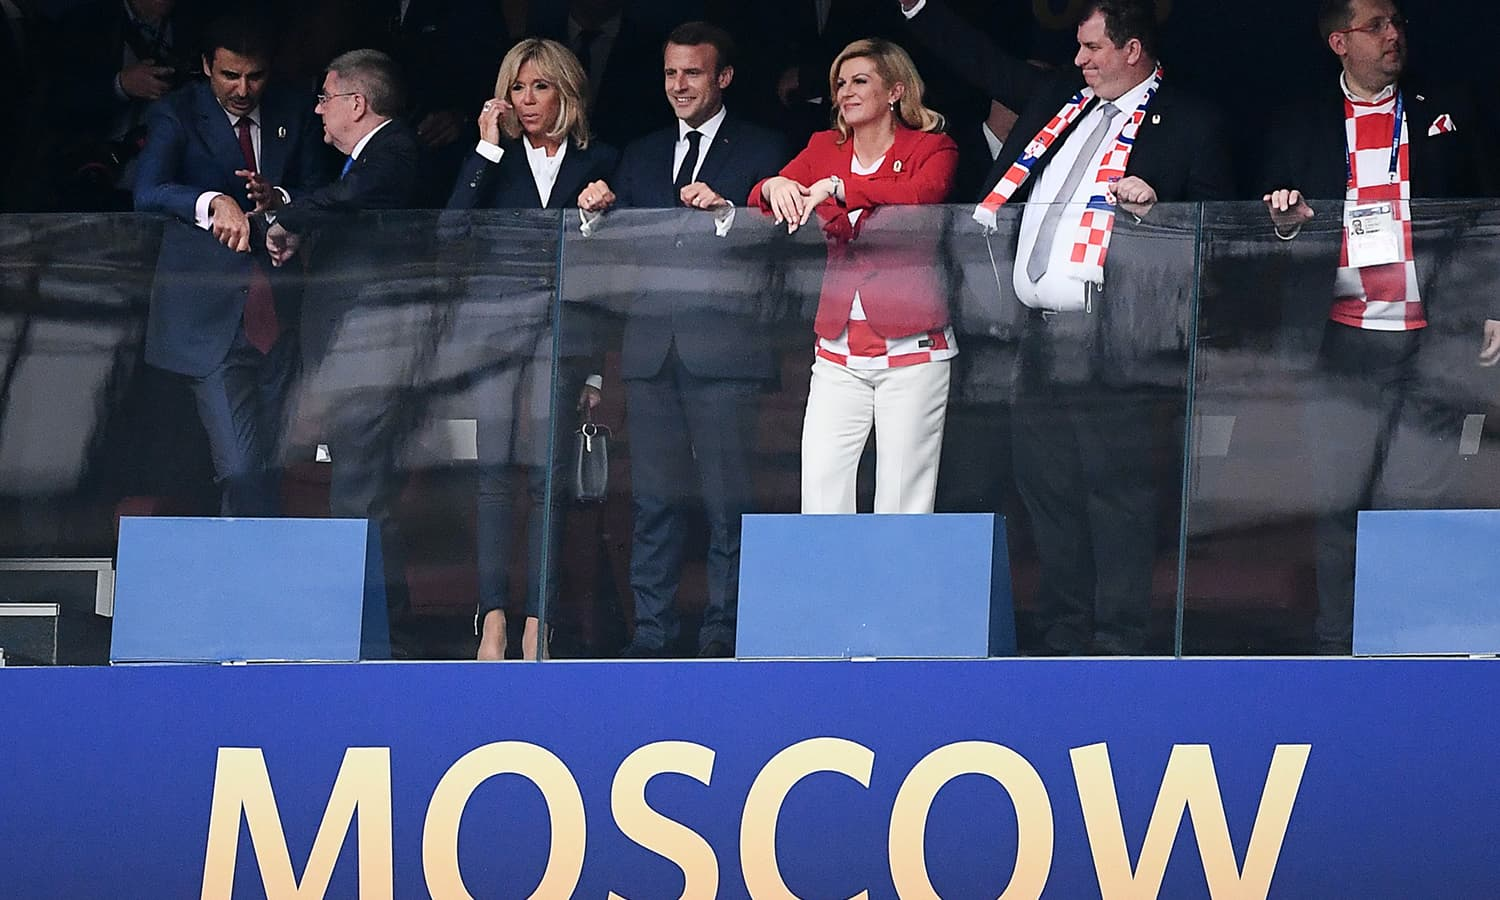 (L to R) Emir of Qatar Sheikh Tamim bin Hamad Al-Thani, IOC President Thomas Bach, French First lady Brigitte Macron, French President Emmanuel Macron, Croatian President Kolinda Grabar-Kitarovic and her husband Jakov Grabar-Kitarovic attend the Russia 2018 World Cup final. — AFP